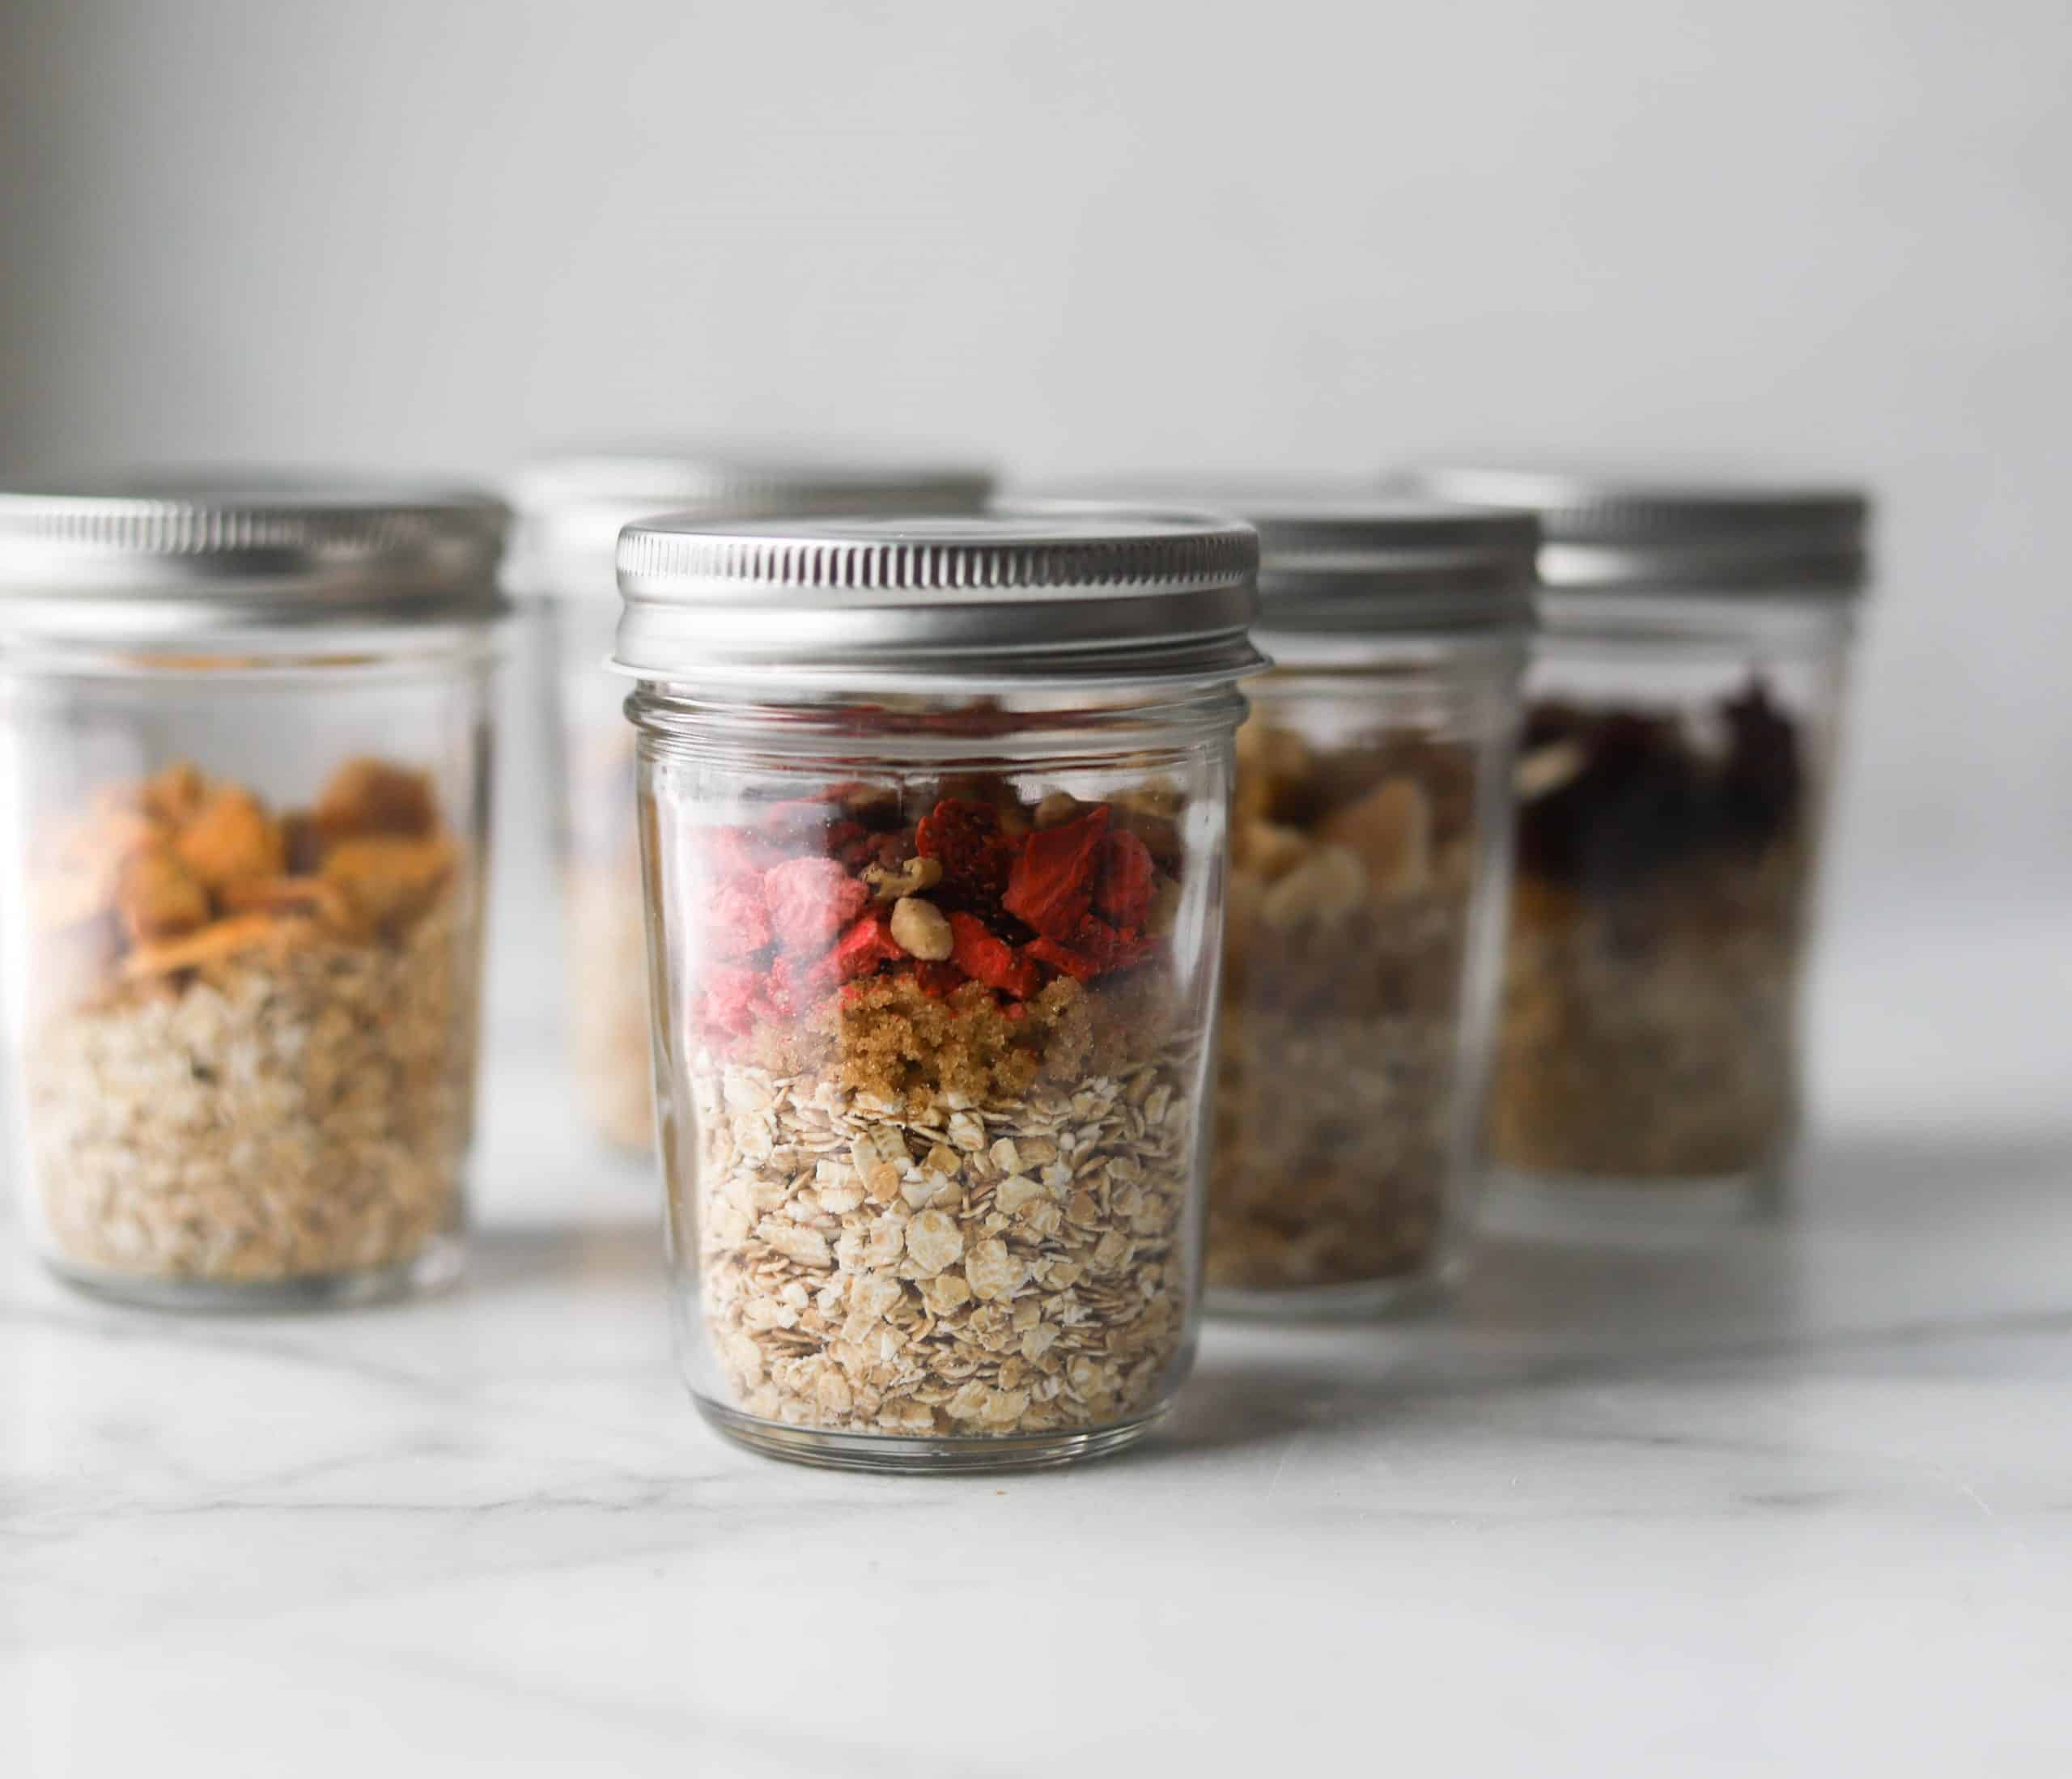 Instant oatmeal ingredients in small clear jars on a marble surface.